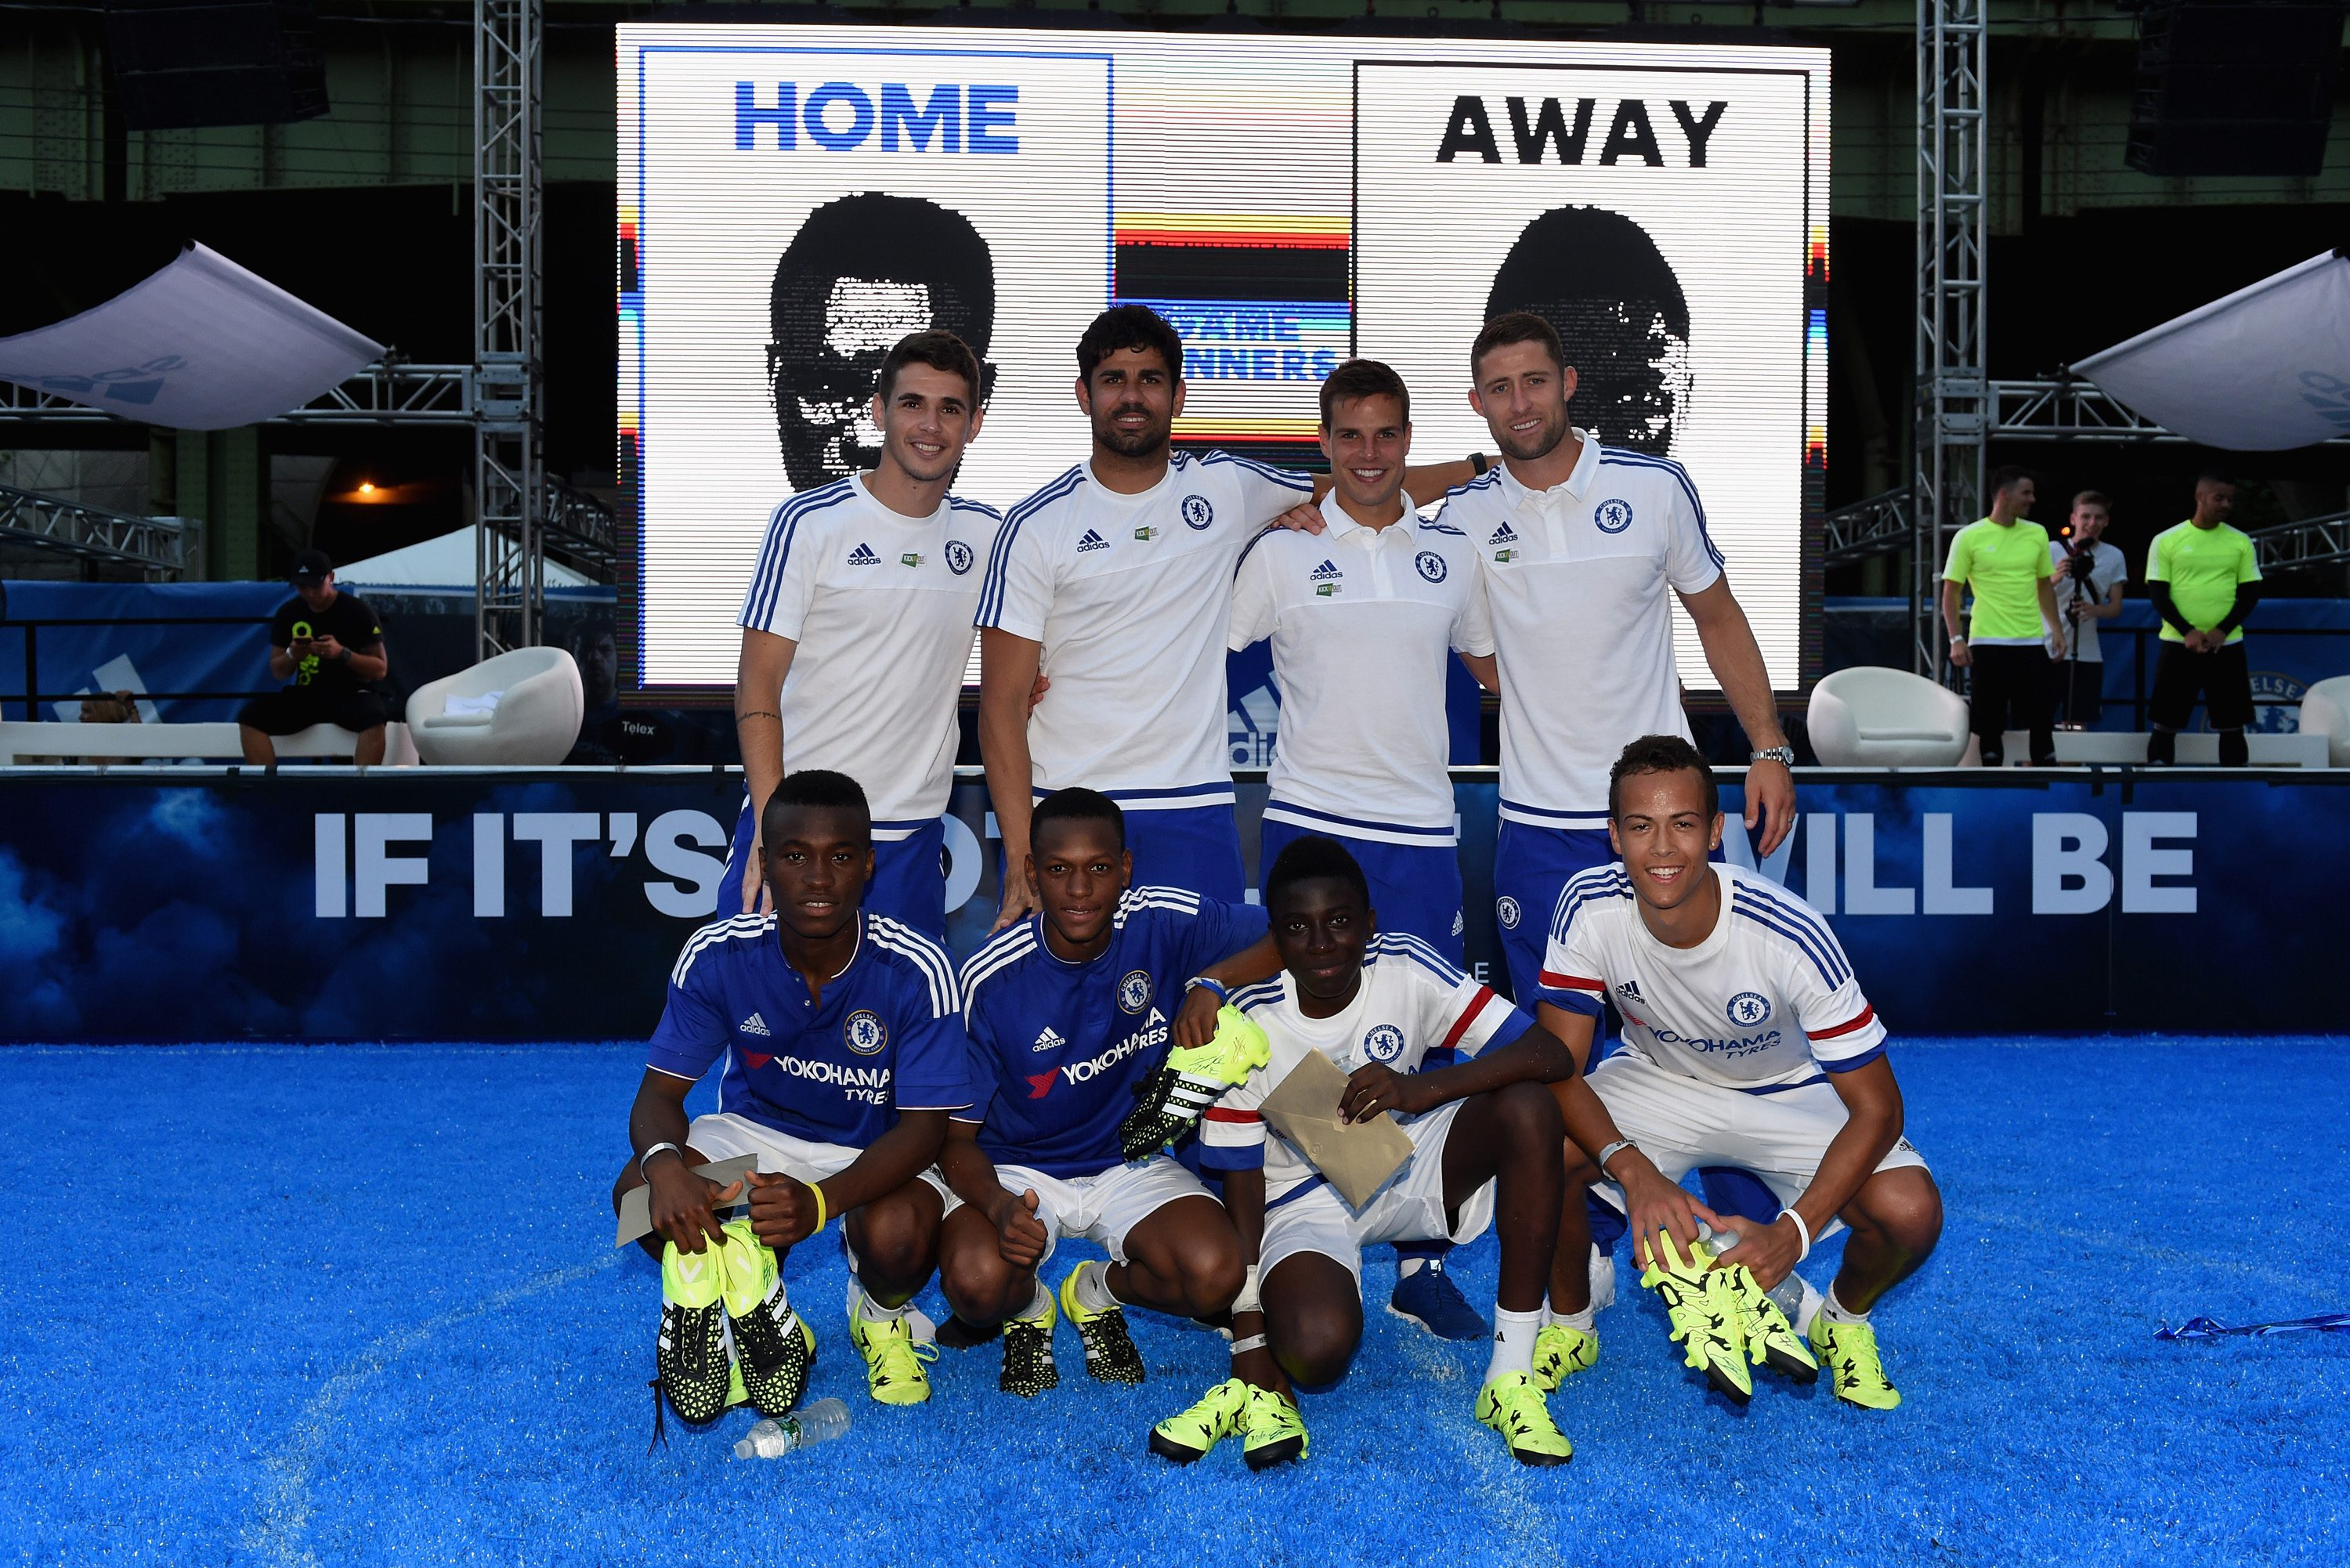 Chelsea's Gary Cahill, Oscar, Diego Costa, Cesar Azpilicueta, Eden Hazard during the Adidas Be The Difference Event on 21st July 2015 at the FC Harlem Training Ground in Harlem, New York, USA.